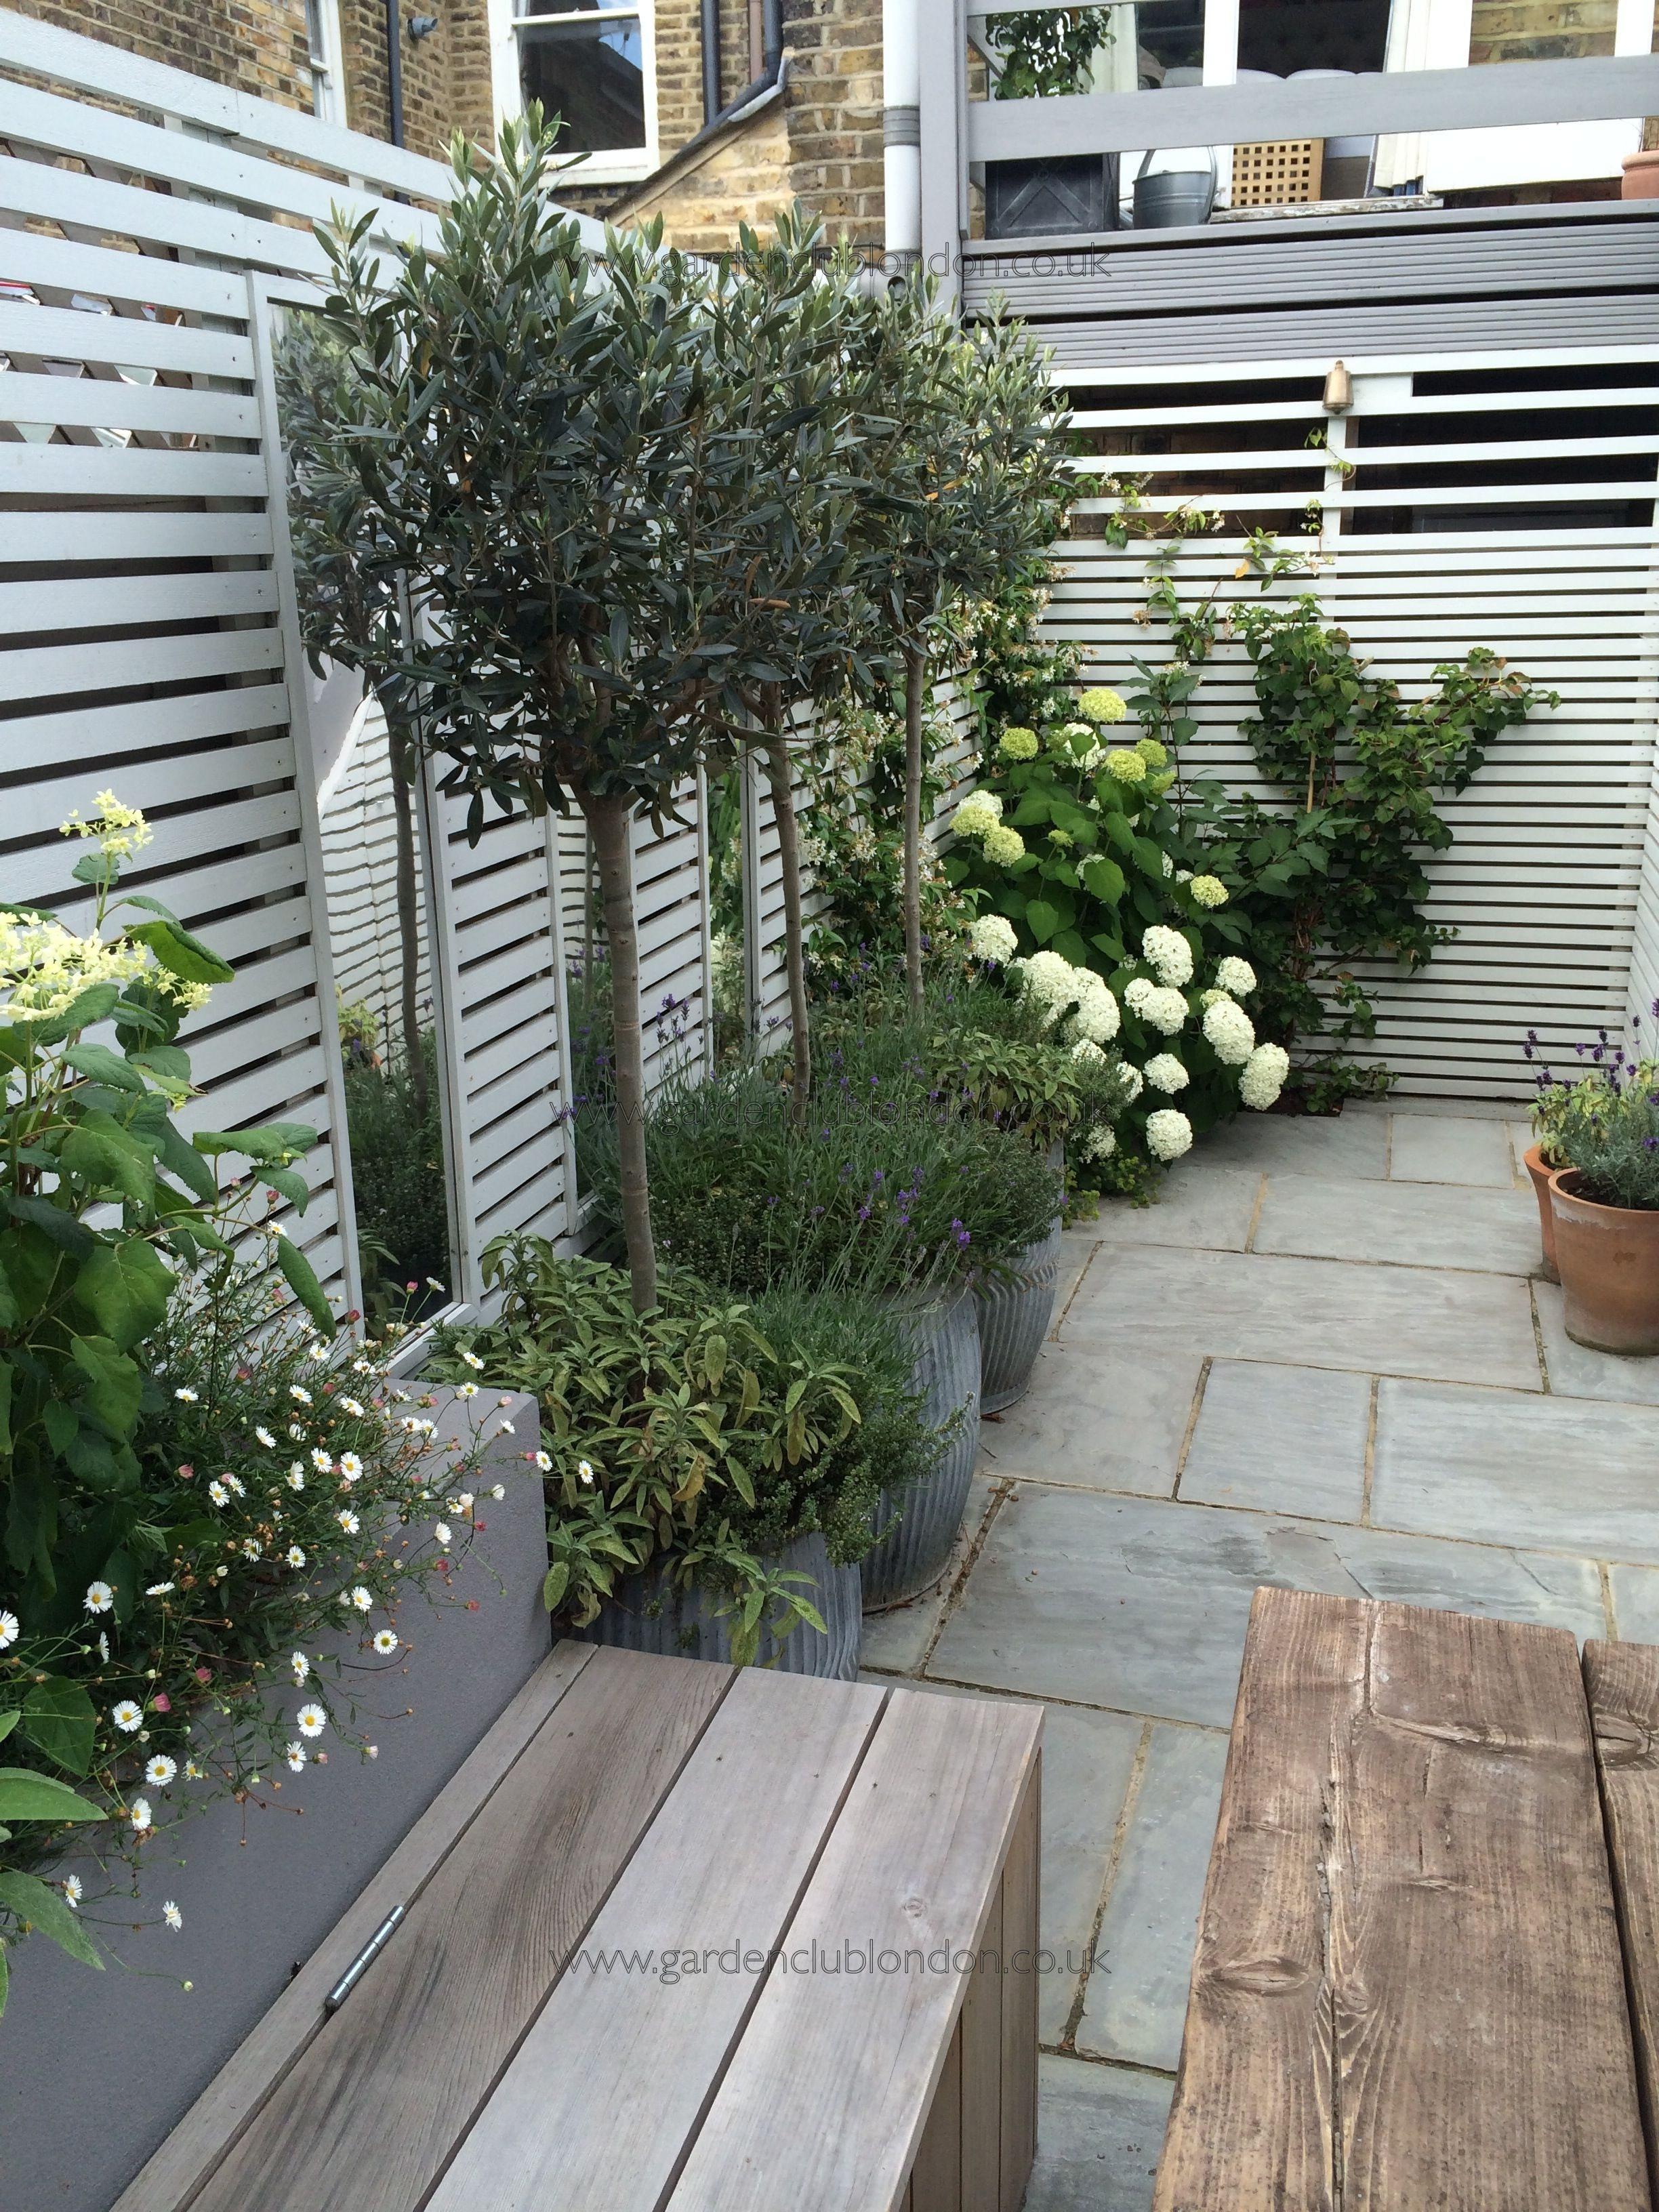 Chic modern garden design in chelsea by declan buckley with steps and - Small Rear Garden In London Potted Plants In Front Of Mirrors Provide An Illusion Of